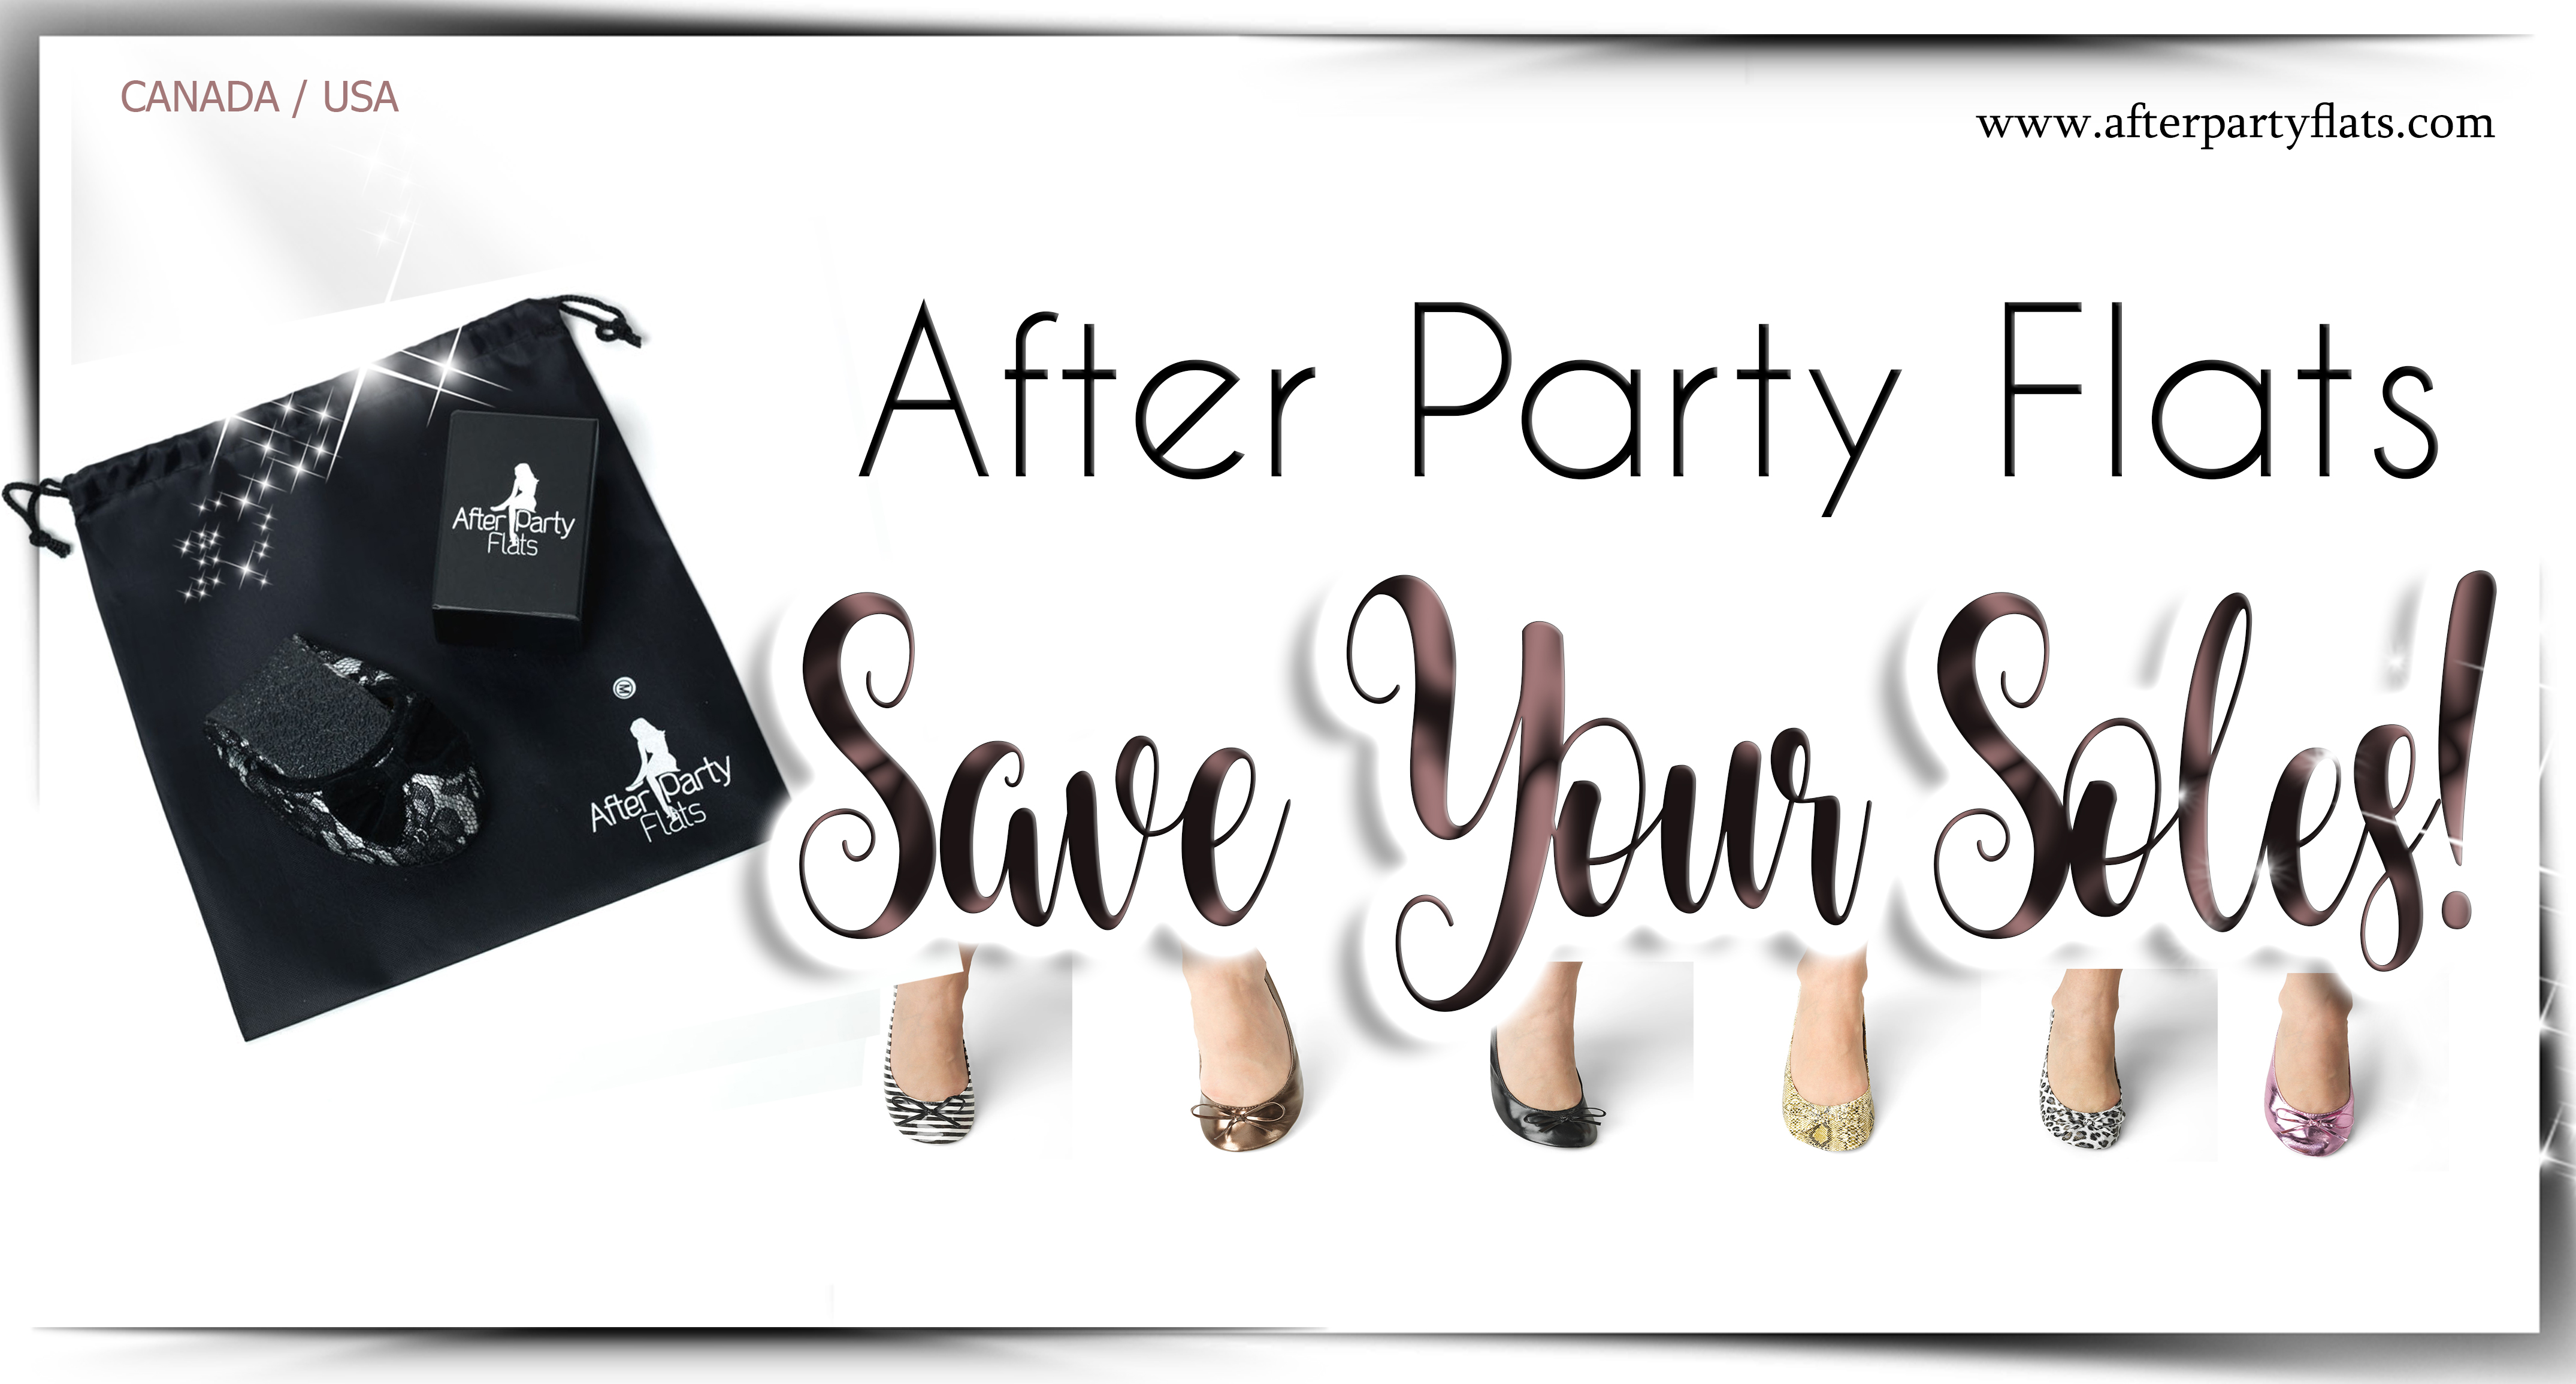 AFTER PARTY FLATS FB COVER PLAIN SHOES 9